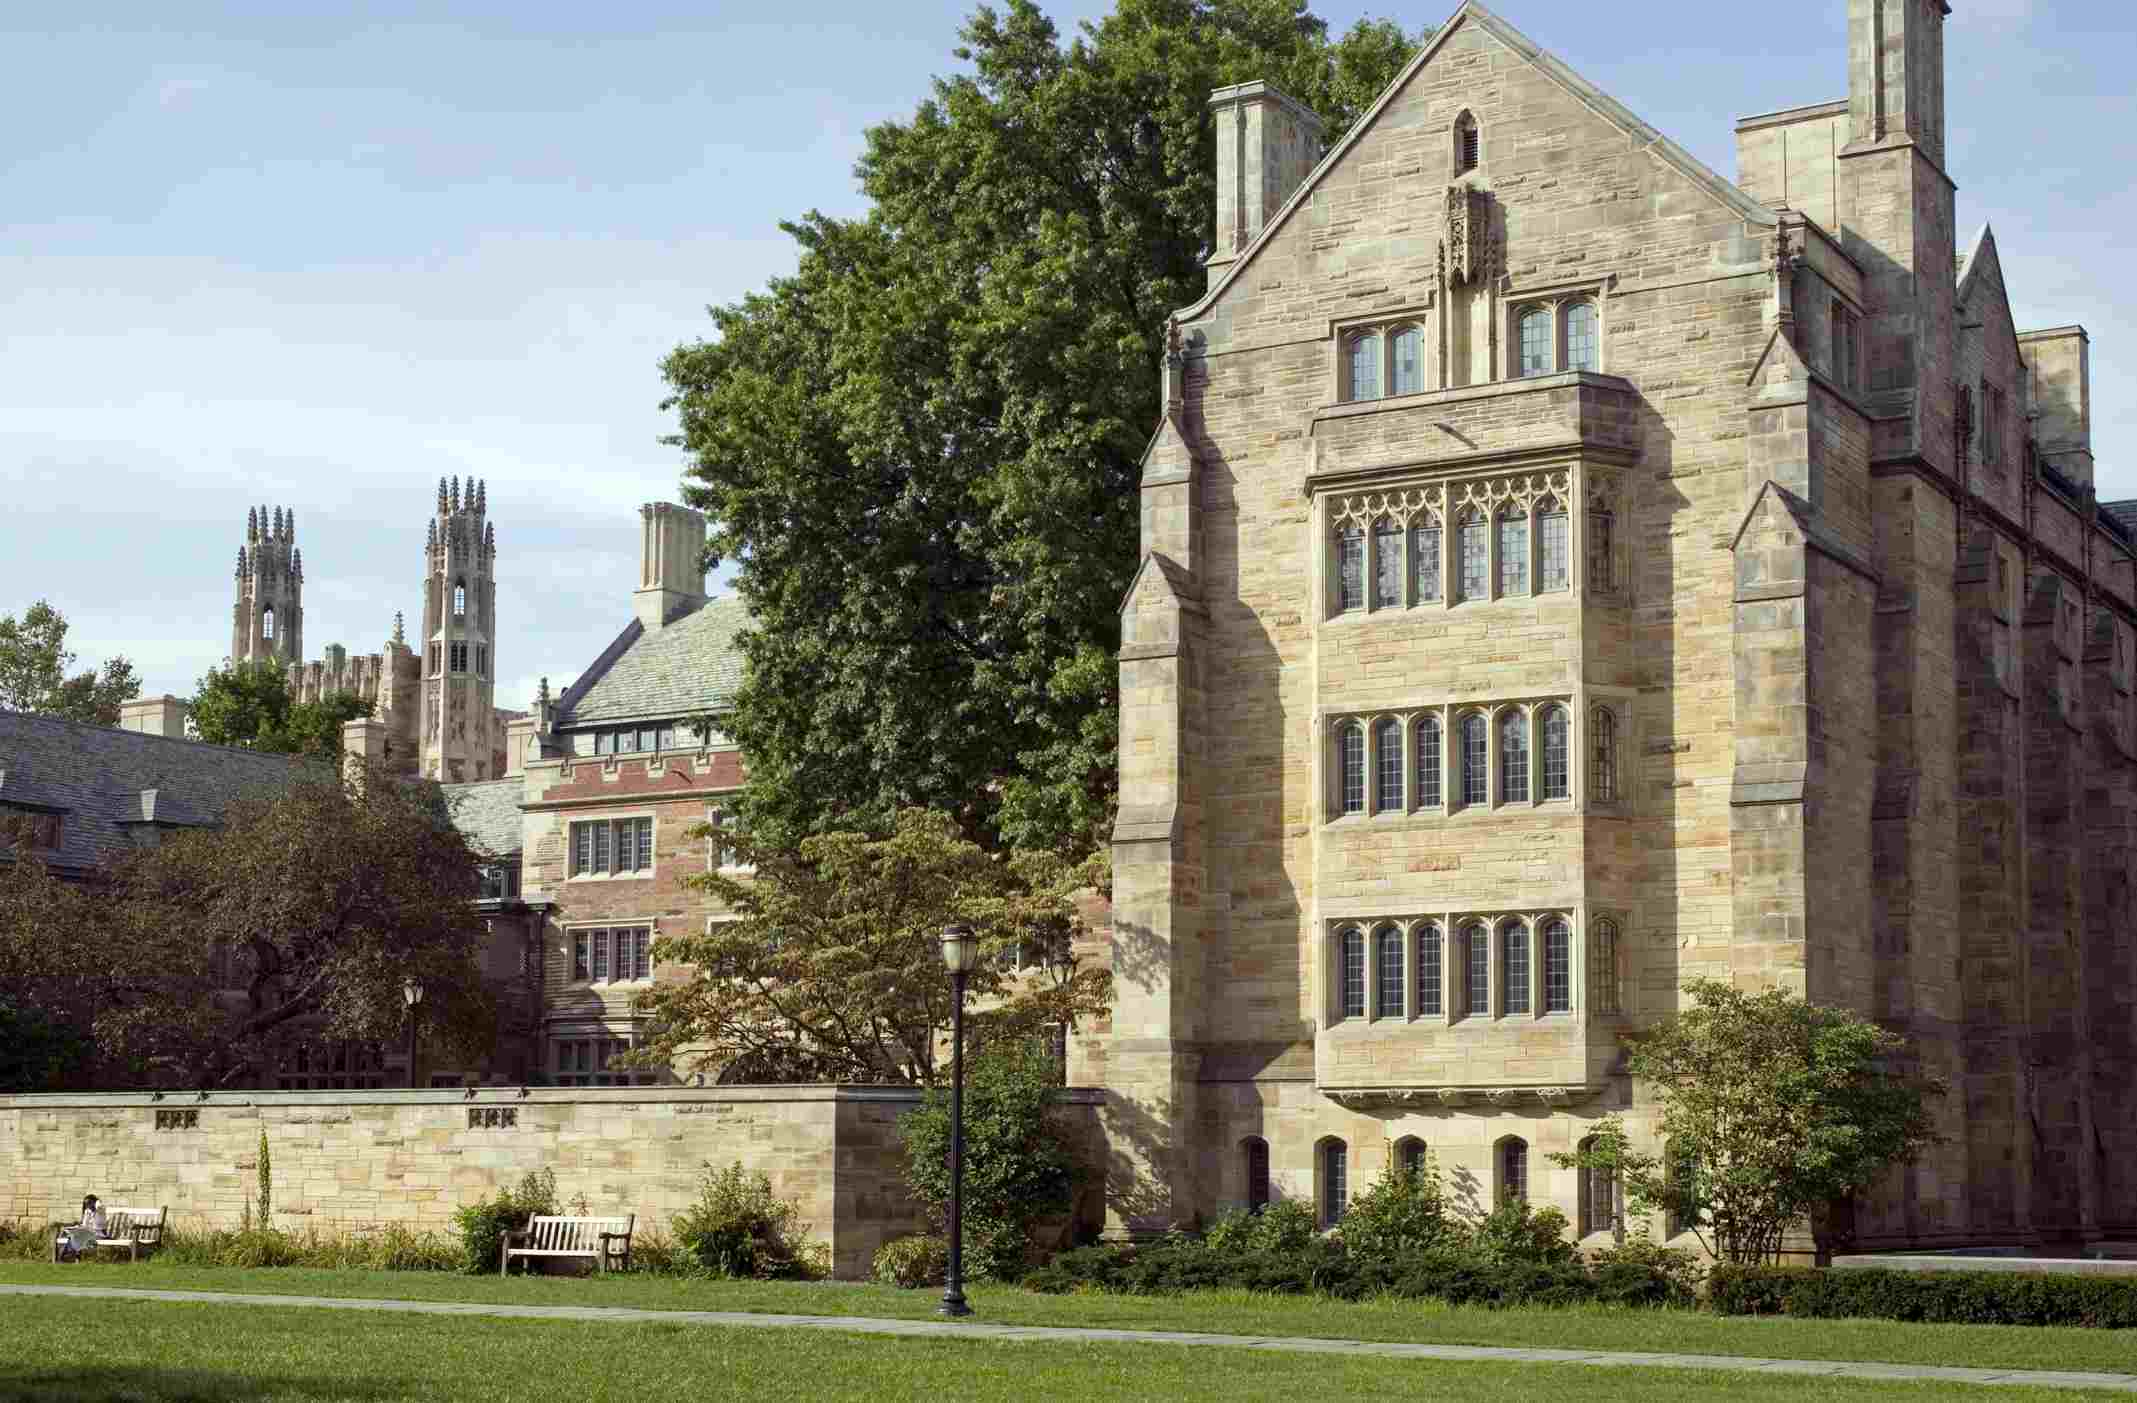 Building that is part of Yale University